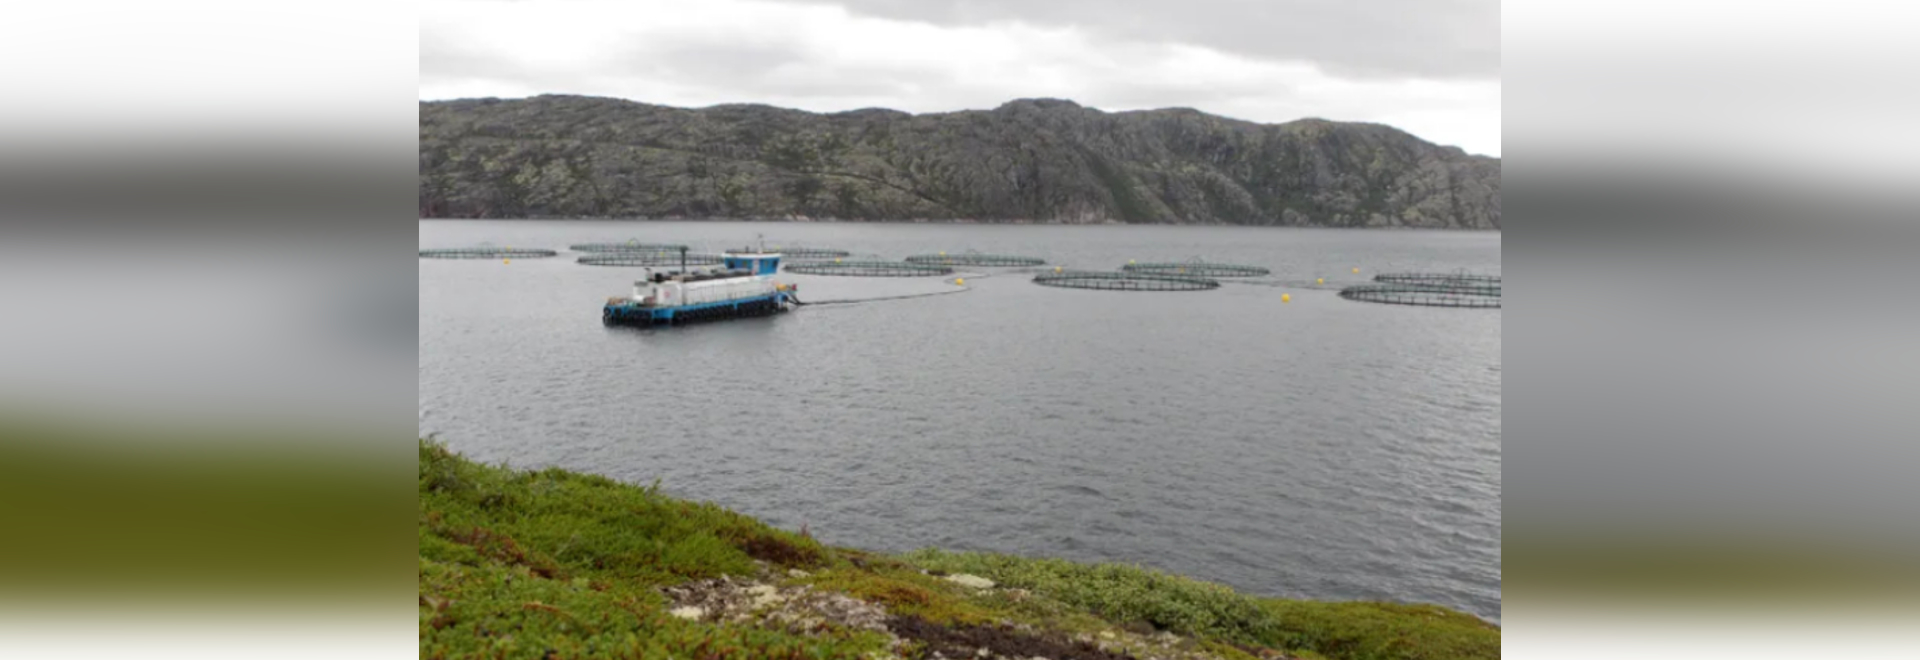 Russian Aquaculture currently owns licences for 34 salmon and rainbow trout sites, with - they say - the potential production volume of 50,000 tonnes per annum